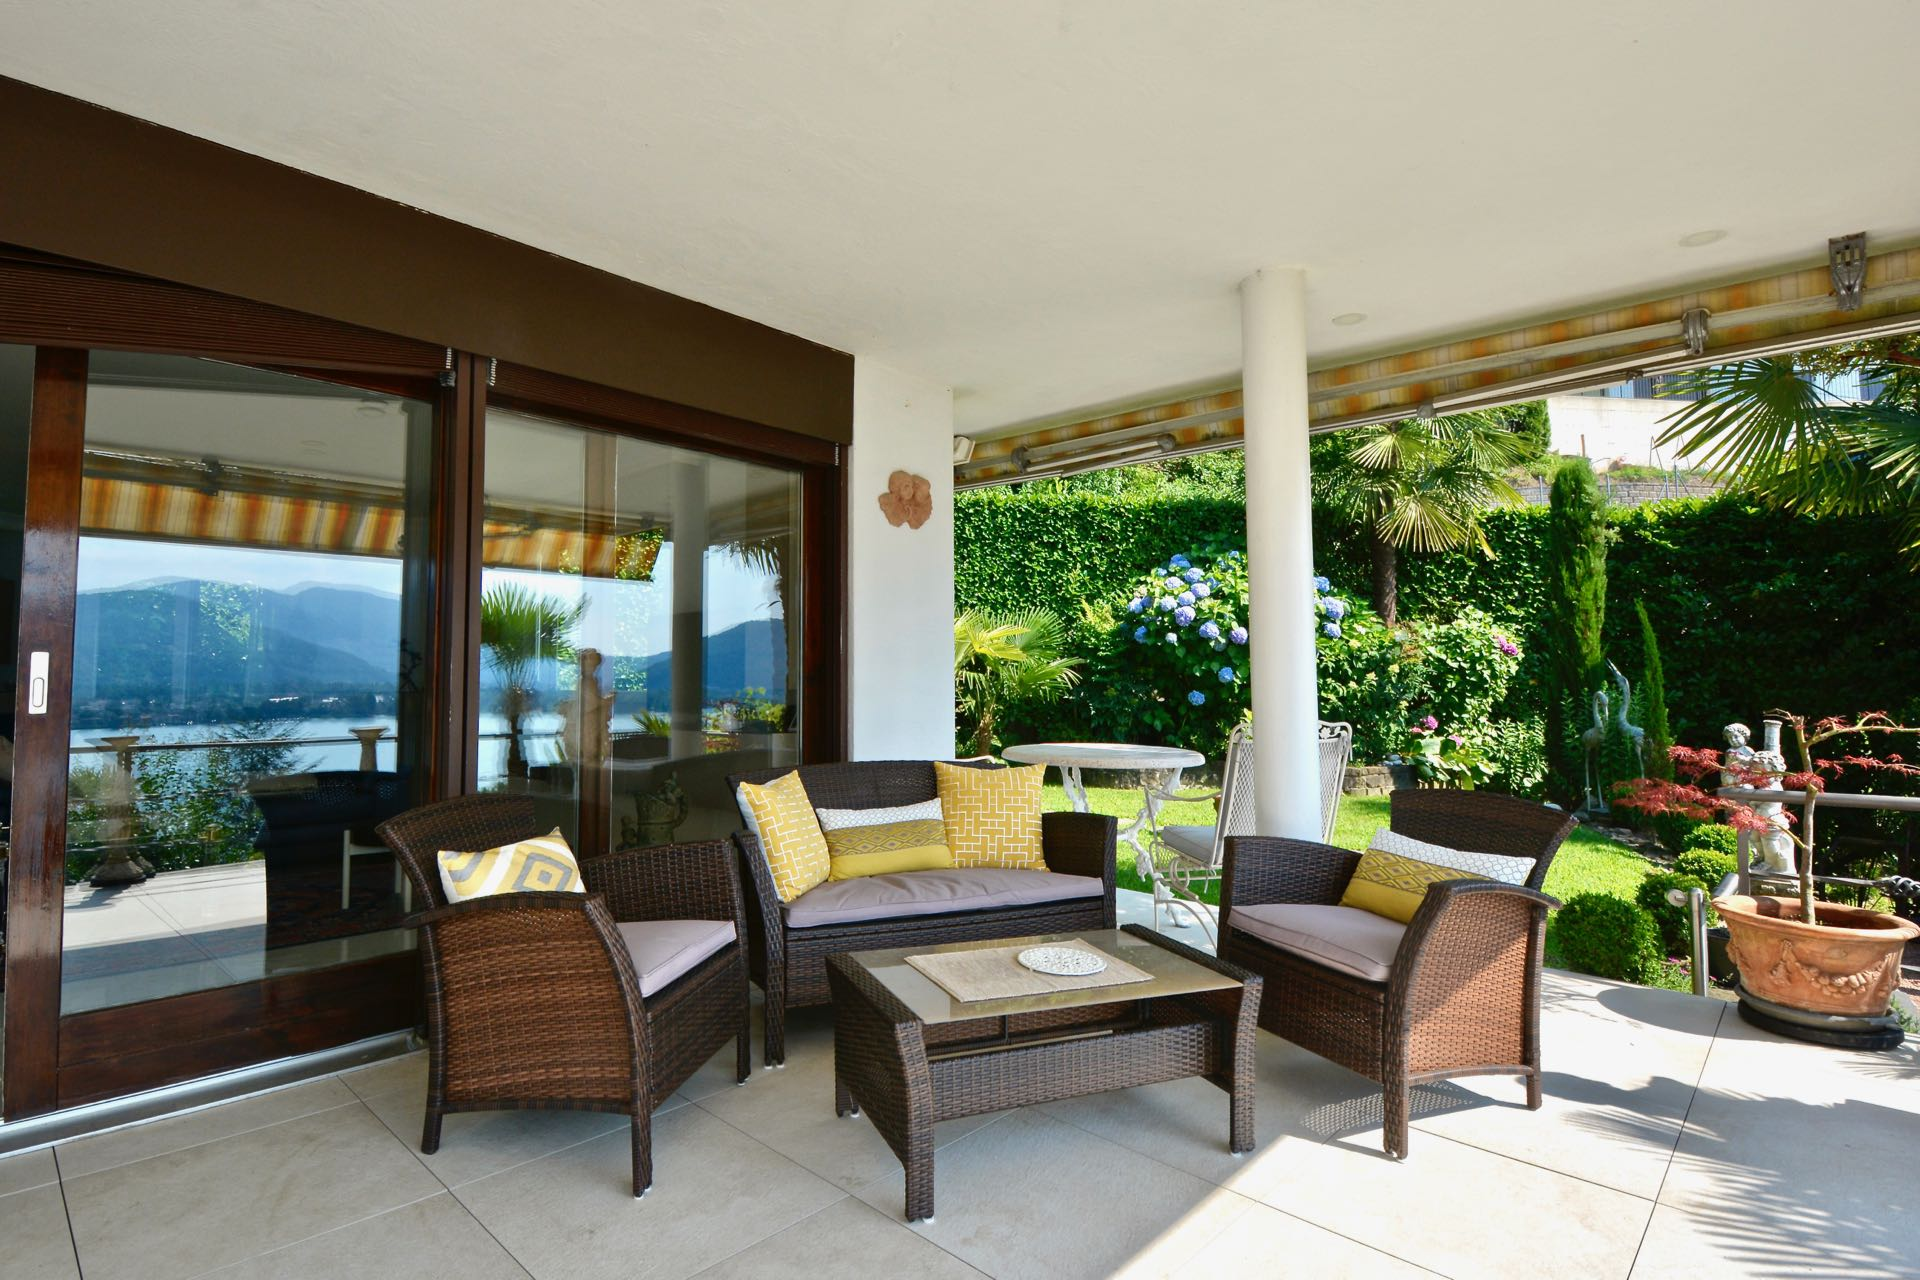 Beautiful portico with direct access to the private garden,Duplex apartment in Montagnola, Switzerland for sale with wonderful Lake Lugano view